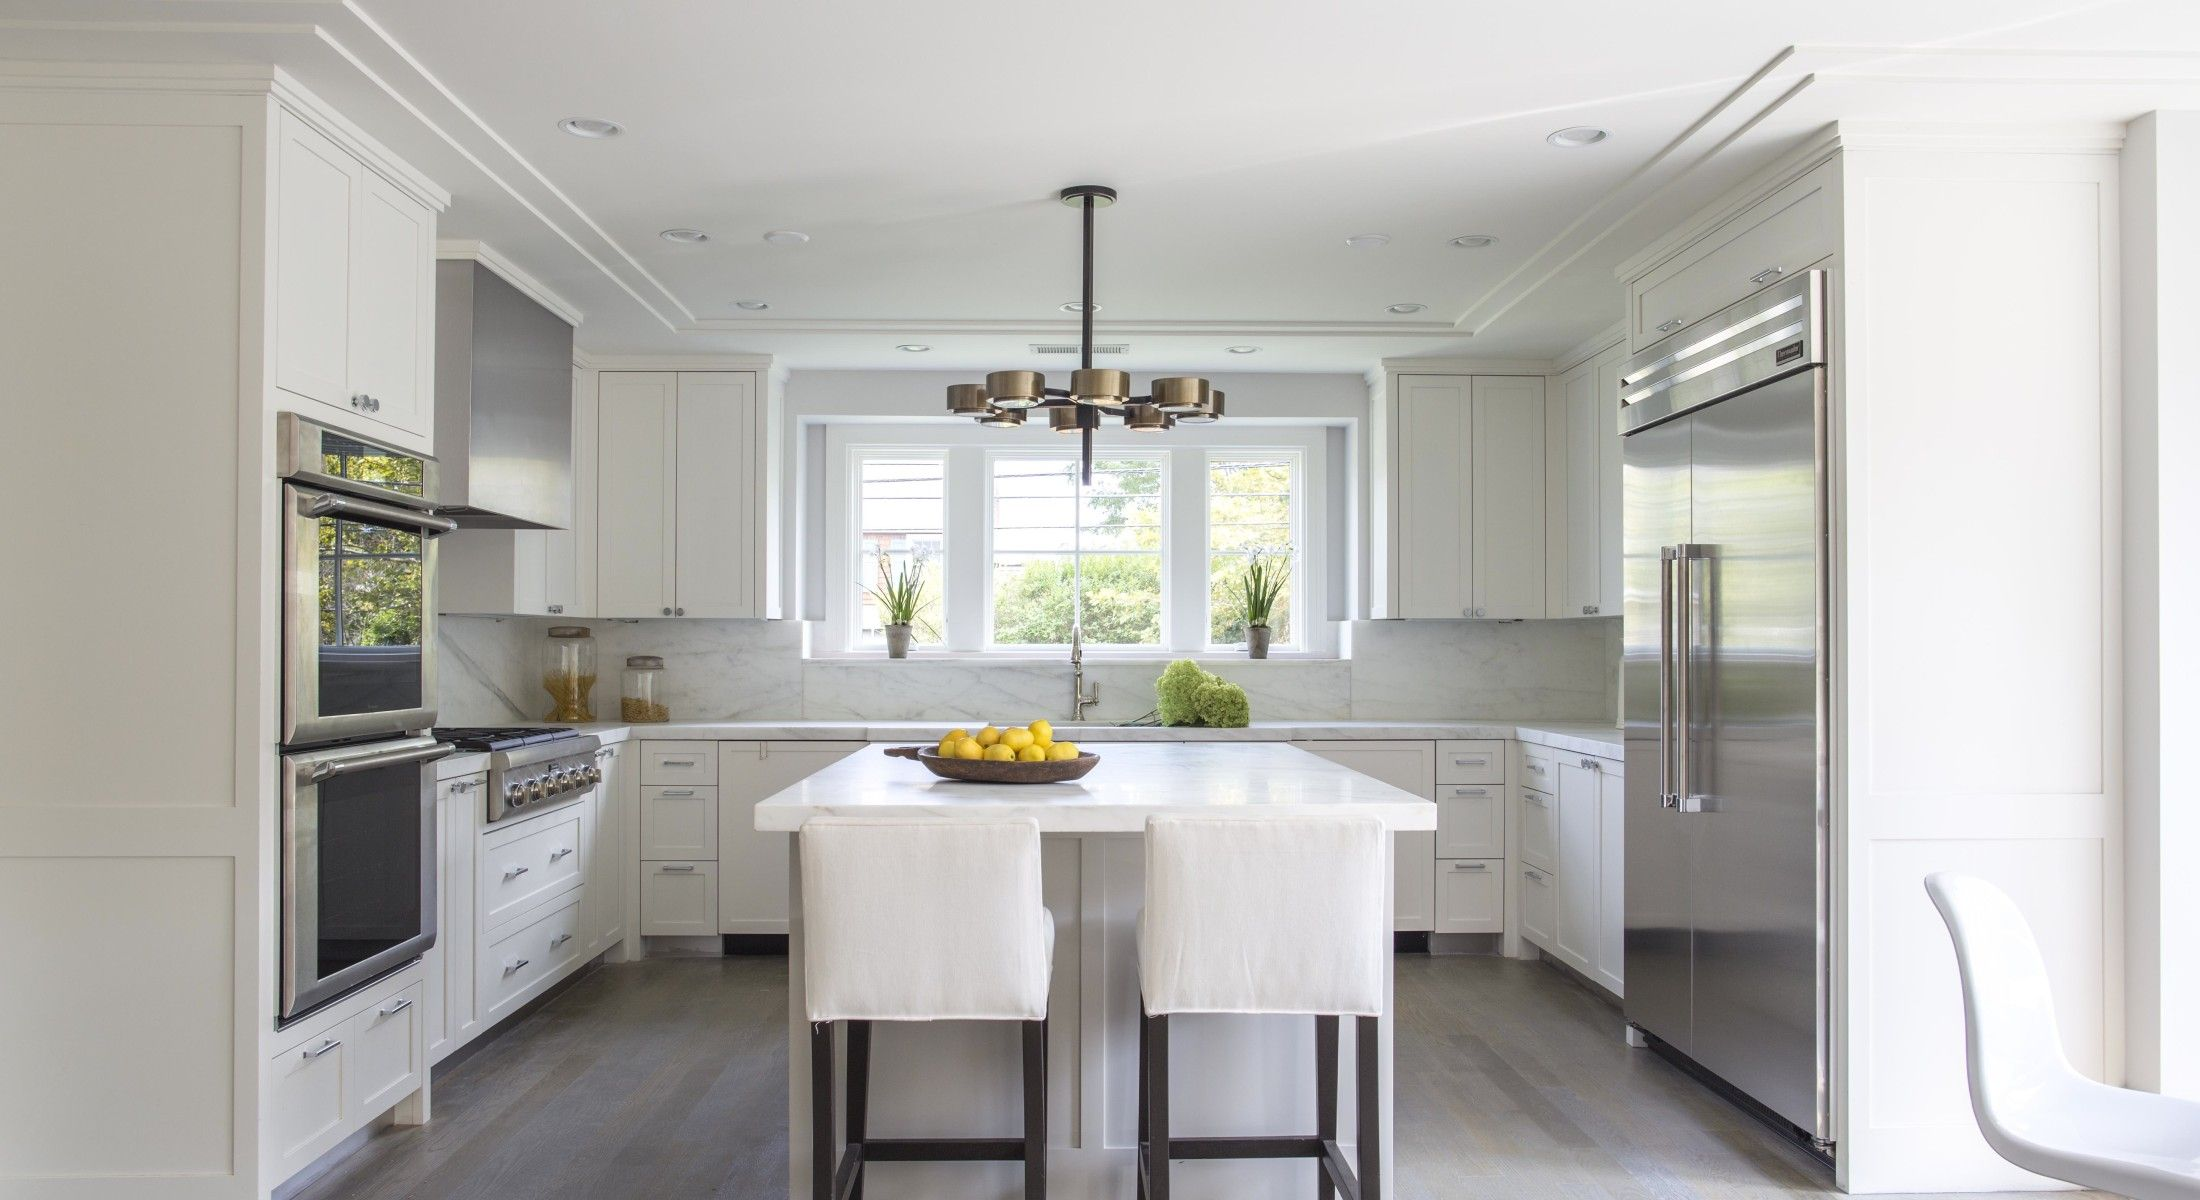 Norwalk Ave Kitchen Remodeling Projects White Kitchen Remodeling Simple Kitchen Remodel